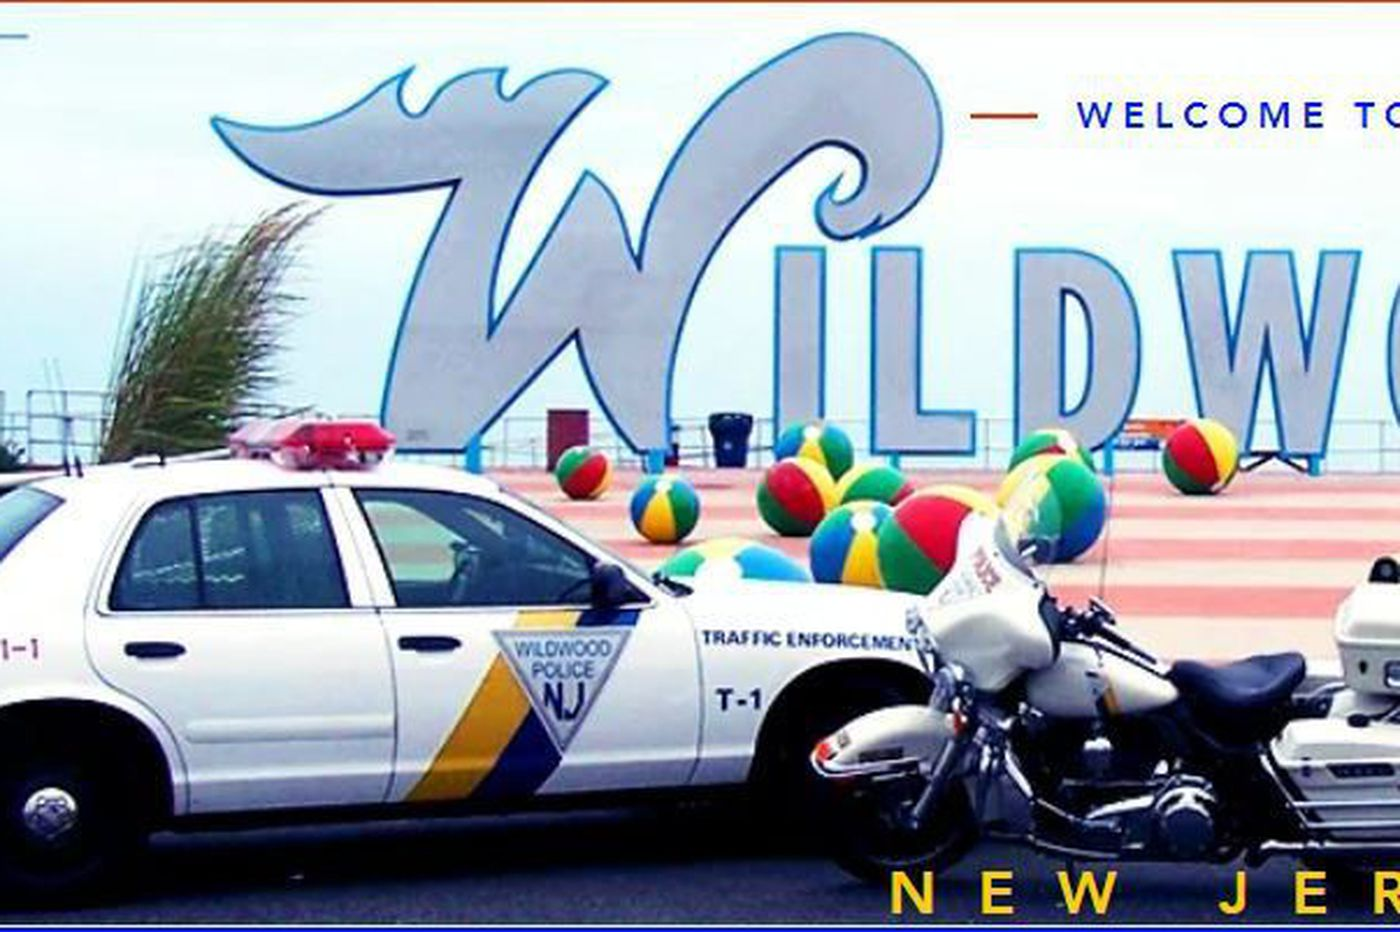 Wildwood officer under investigation after video shows him punching male on the ground